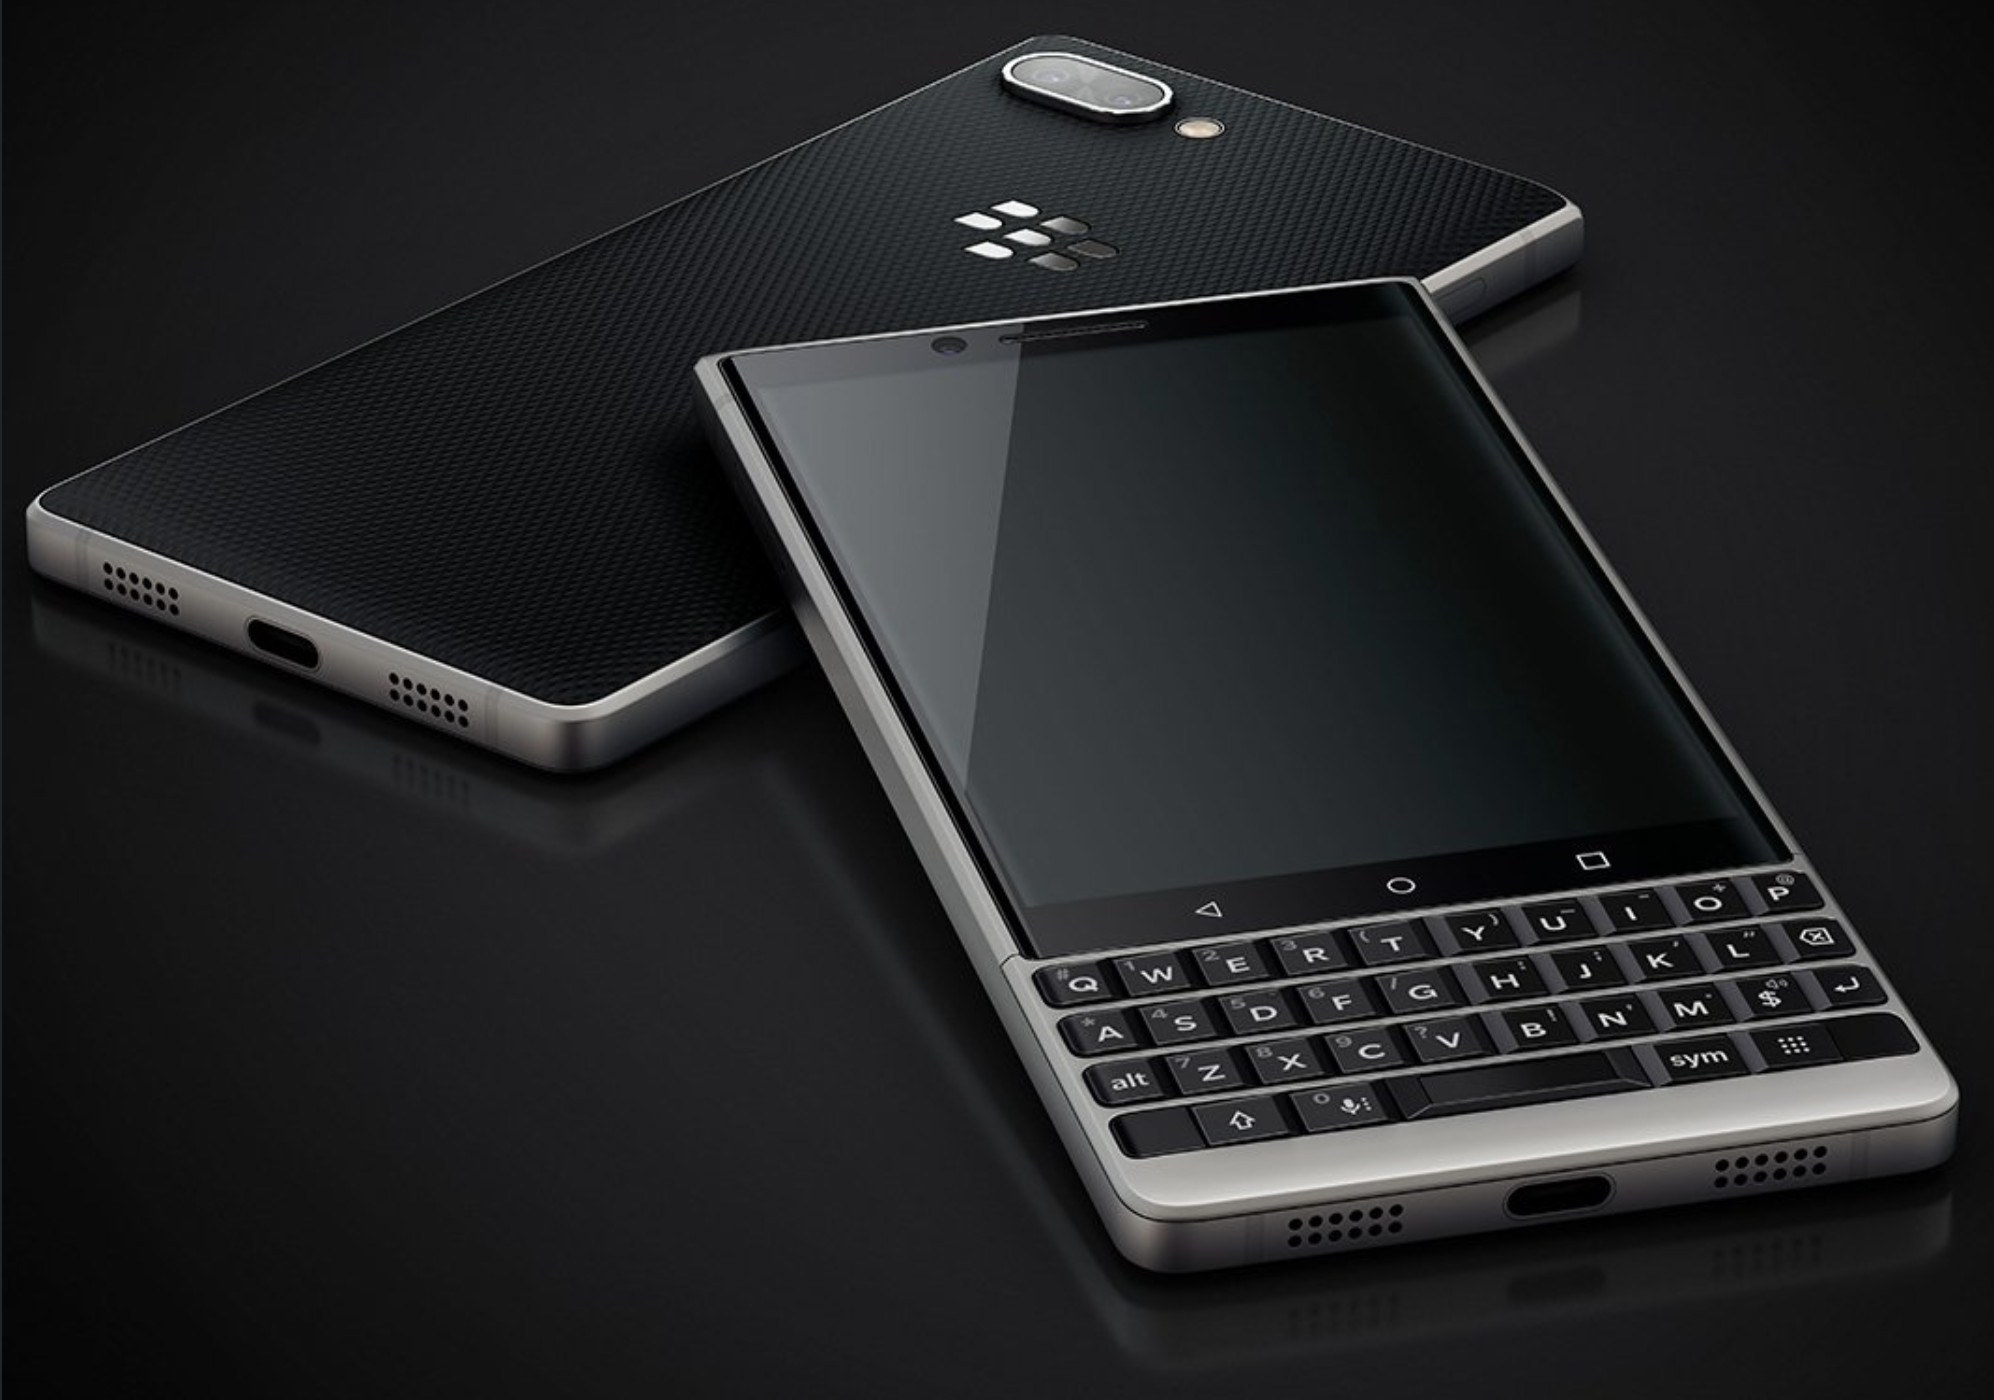 Leaked images show the Blackberry Key2